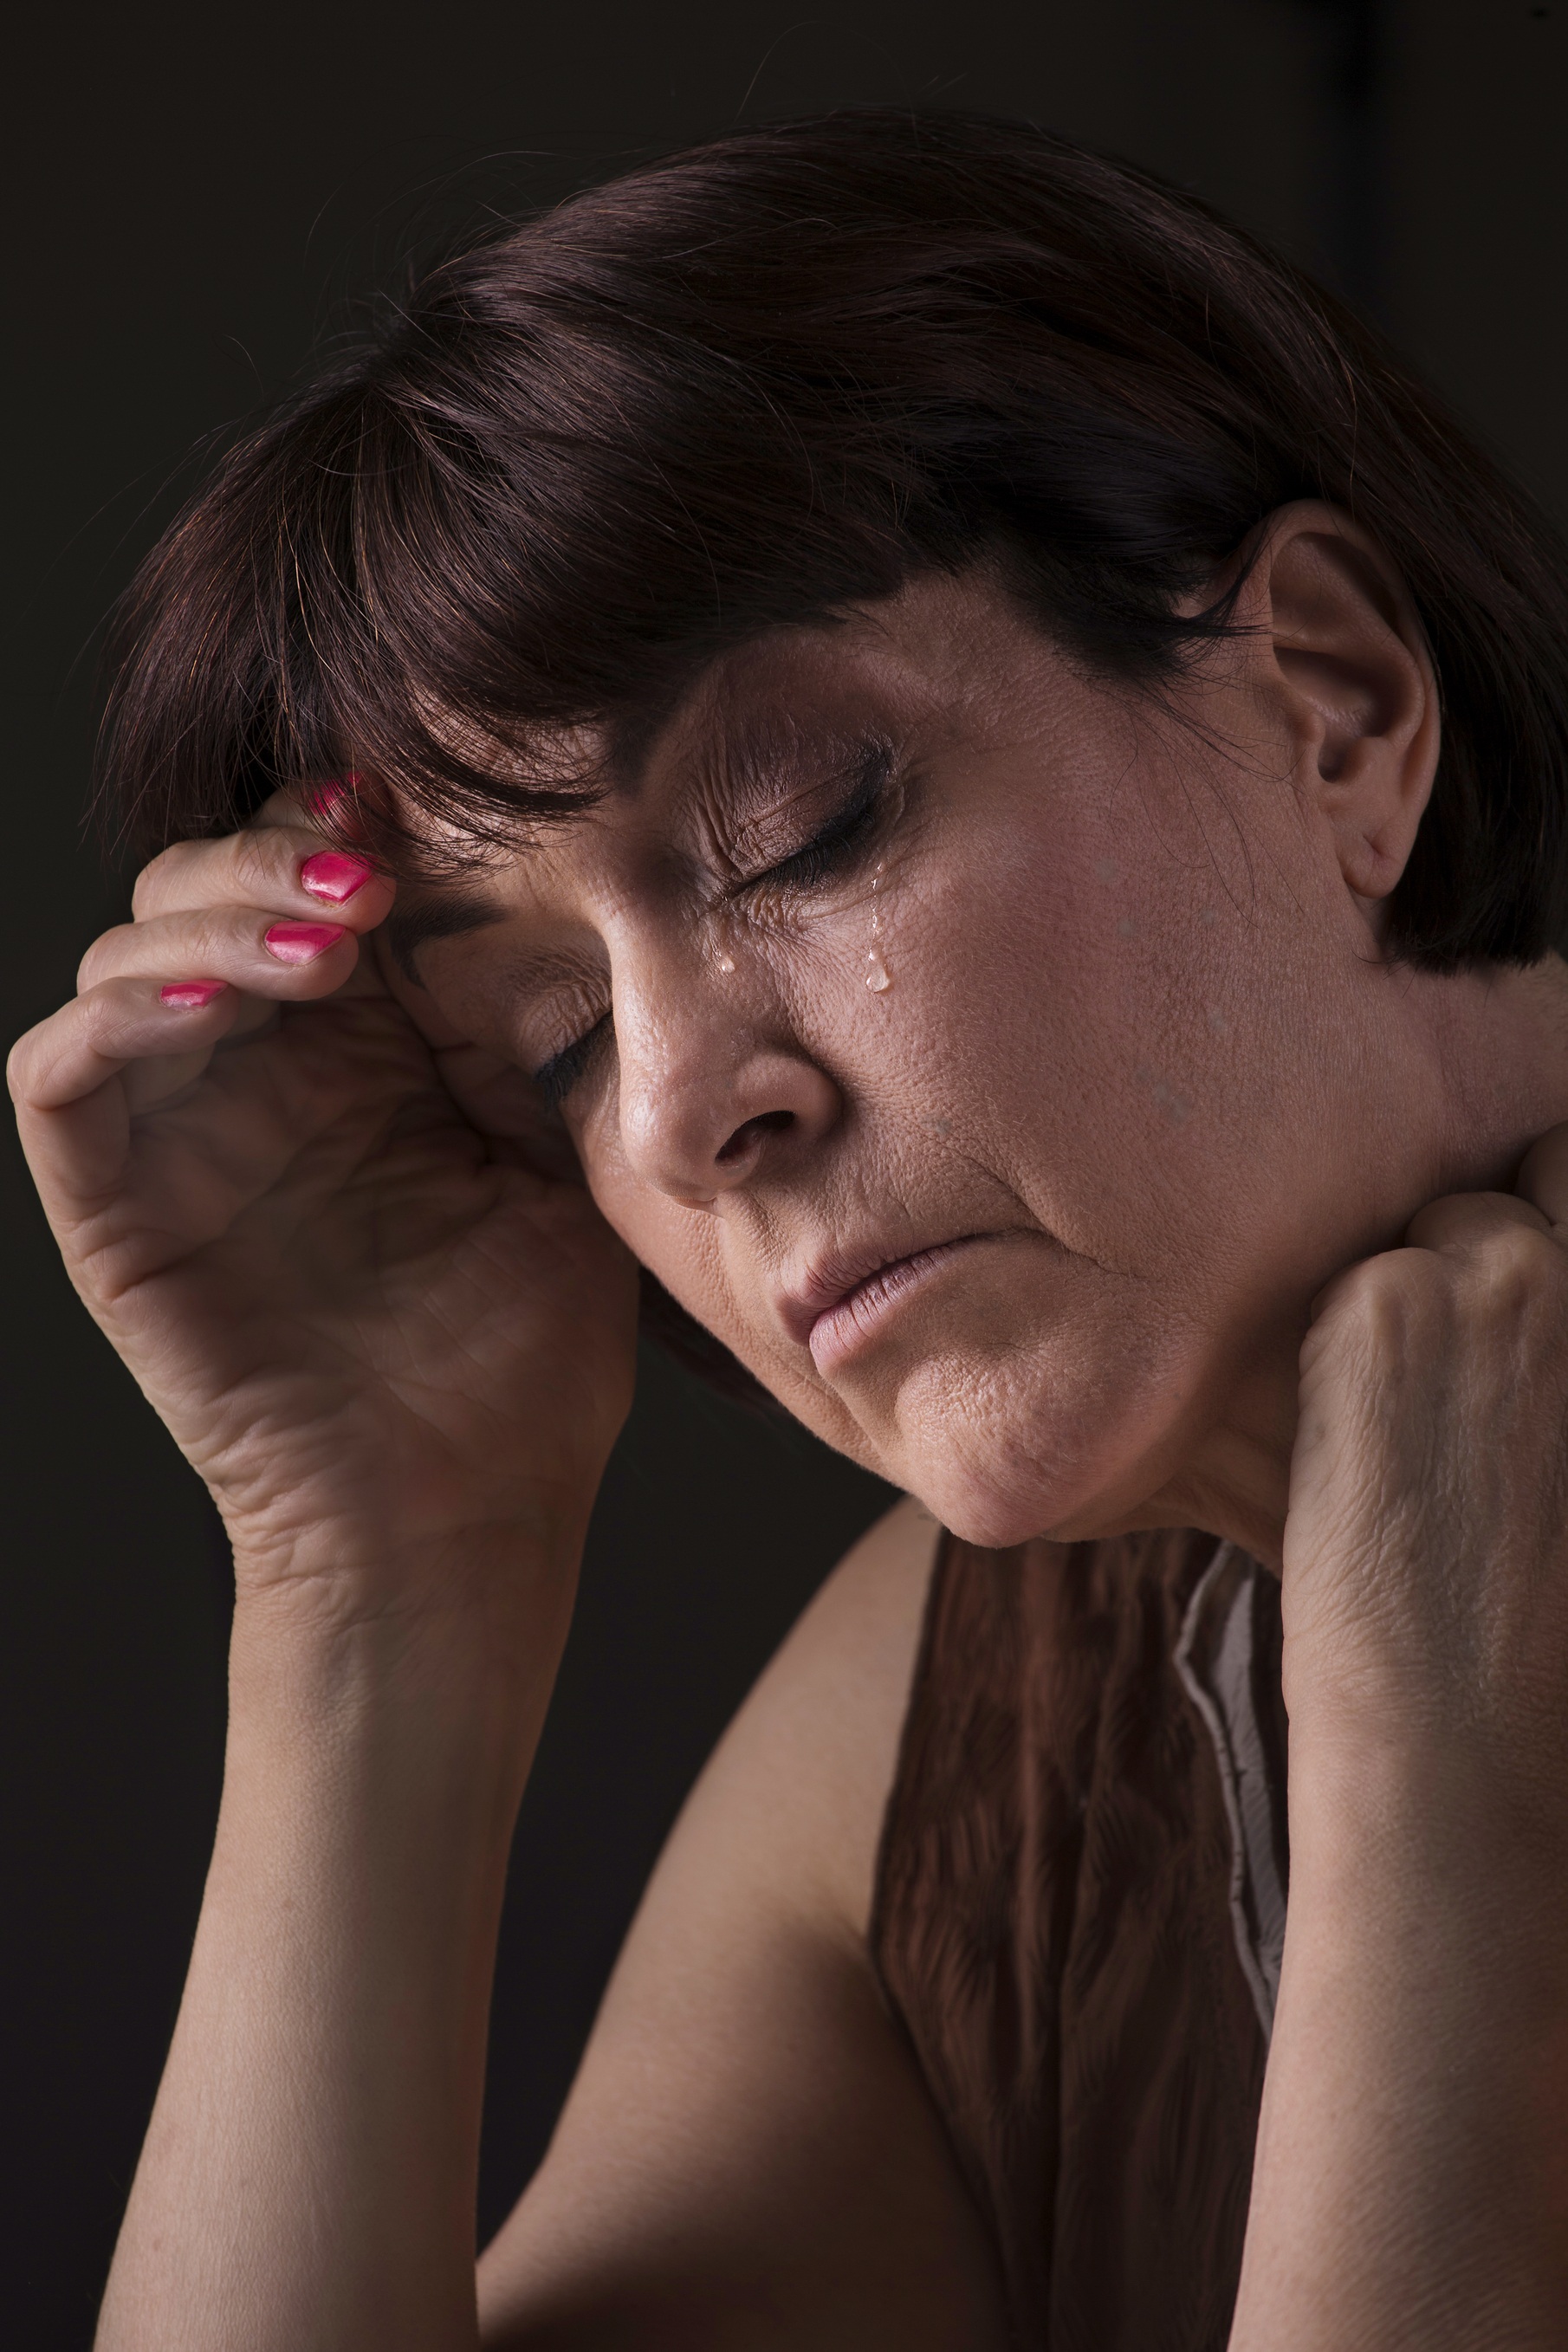 The Link Between Bipolar Disorder and Substance Abuse